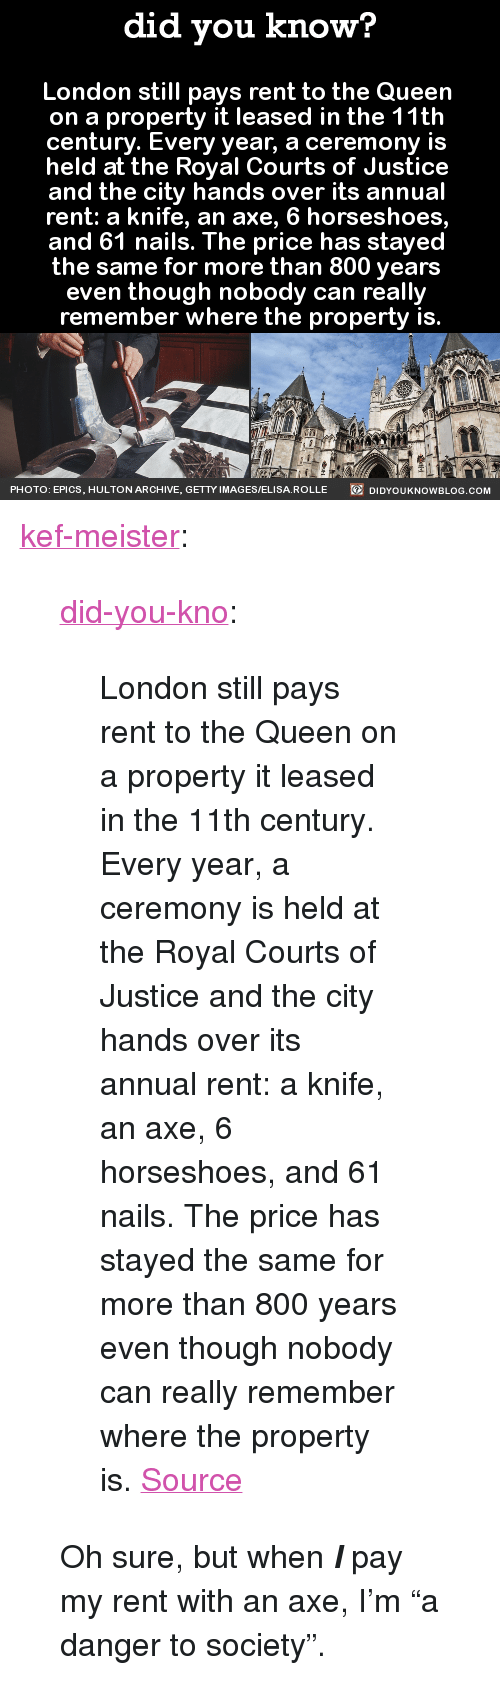 "Tumblr, Queen, and Blog: did you know?  London still pays rent to the Queen  on a property it leased in the 11th  century. Every year, a ceremony is  held at the Royal Courts of Justice  and the city hands over its annual  rent: a knife, an axe, 6 horseshoes,  and 61 nails. The price has stayed  the same for more than 800 years  even though nobody can really  remember where the property is.  PHOTO : EPICS, HULTON ARCHIVE, GETTYIMAGES/ELISA.ROLLE  92  DIDYOUKNOWBLOG.COM <p><a href=""http://kef-meister.tumblr.com/post/152511822077"" class=""tumblr_blog"">kef-meister</a>:</p>  <blockquote><p><a class=""tumblr_blog"" href=""http://did-you-kno.tumblr.com/post/152470387303"">did-you-kno</a>:</p> <blockquote> <p>London still pays rent to the Queen  on a property it leased in the 11th  century. Every year, a ceremony is  held at the Royal Courts of Justice  and the city hands over its annual  rent: a knife, an axe, 6 horseshoes,  and 61 nails. The price has stayed  the same for more than 800 years  even though nobody can really  remember where the property is.  <a href=""http://www.atlasobscura.com/articles/london-is-still-paying-rent-to-the-queen-on-a-property-leased-in-1211"">Source</a></p> </blockquote>  <p>Oh sure, but when <b><i>I</i></b> pay my rent with an axe, I'm ""a danger to society"".<br/></p></blockquote>"